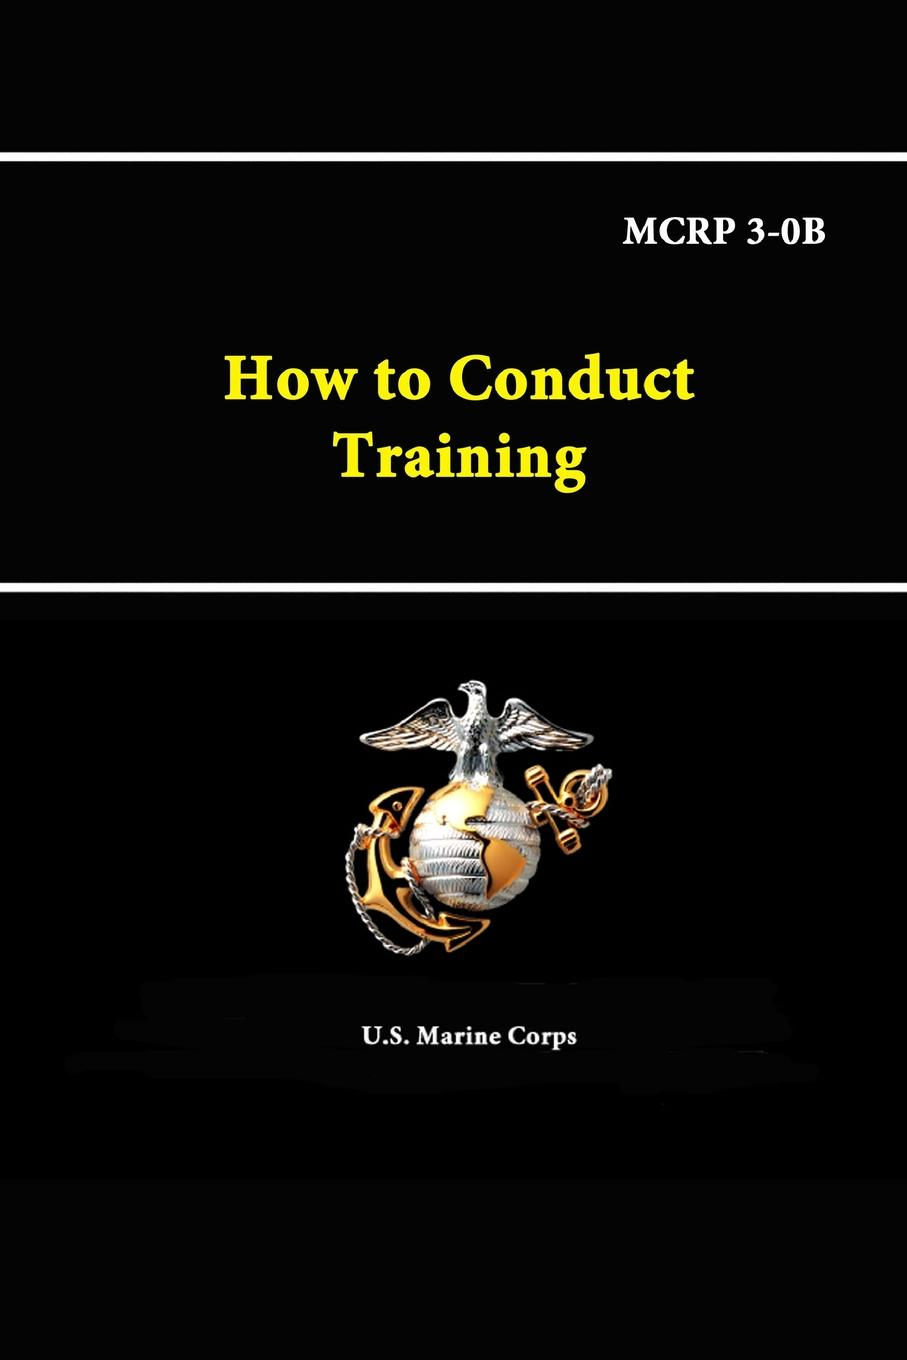 U.S. Marine Corps How to Conduct Training - MCRP 3-0B matthew stephenson the hands on guide to surgical training